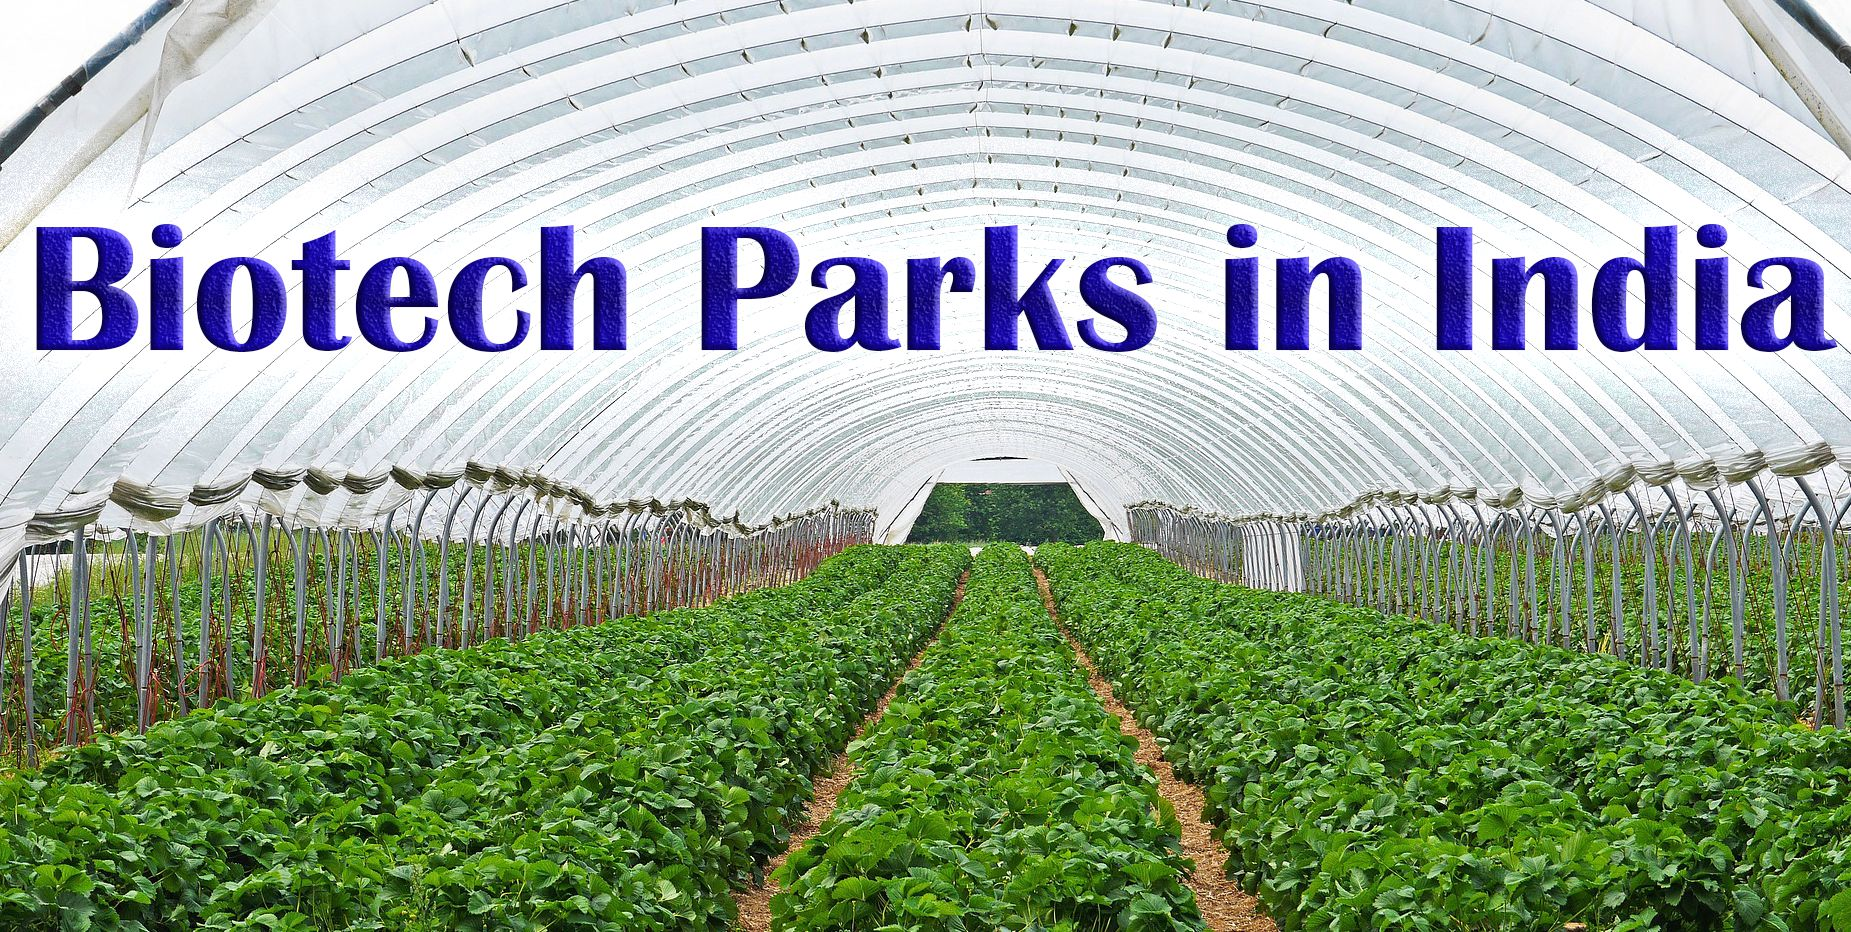 list of biotech parks in India